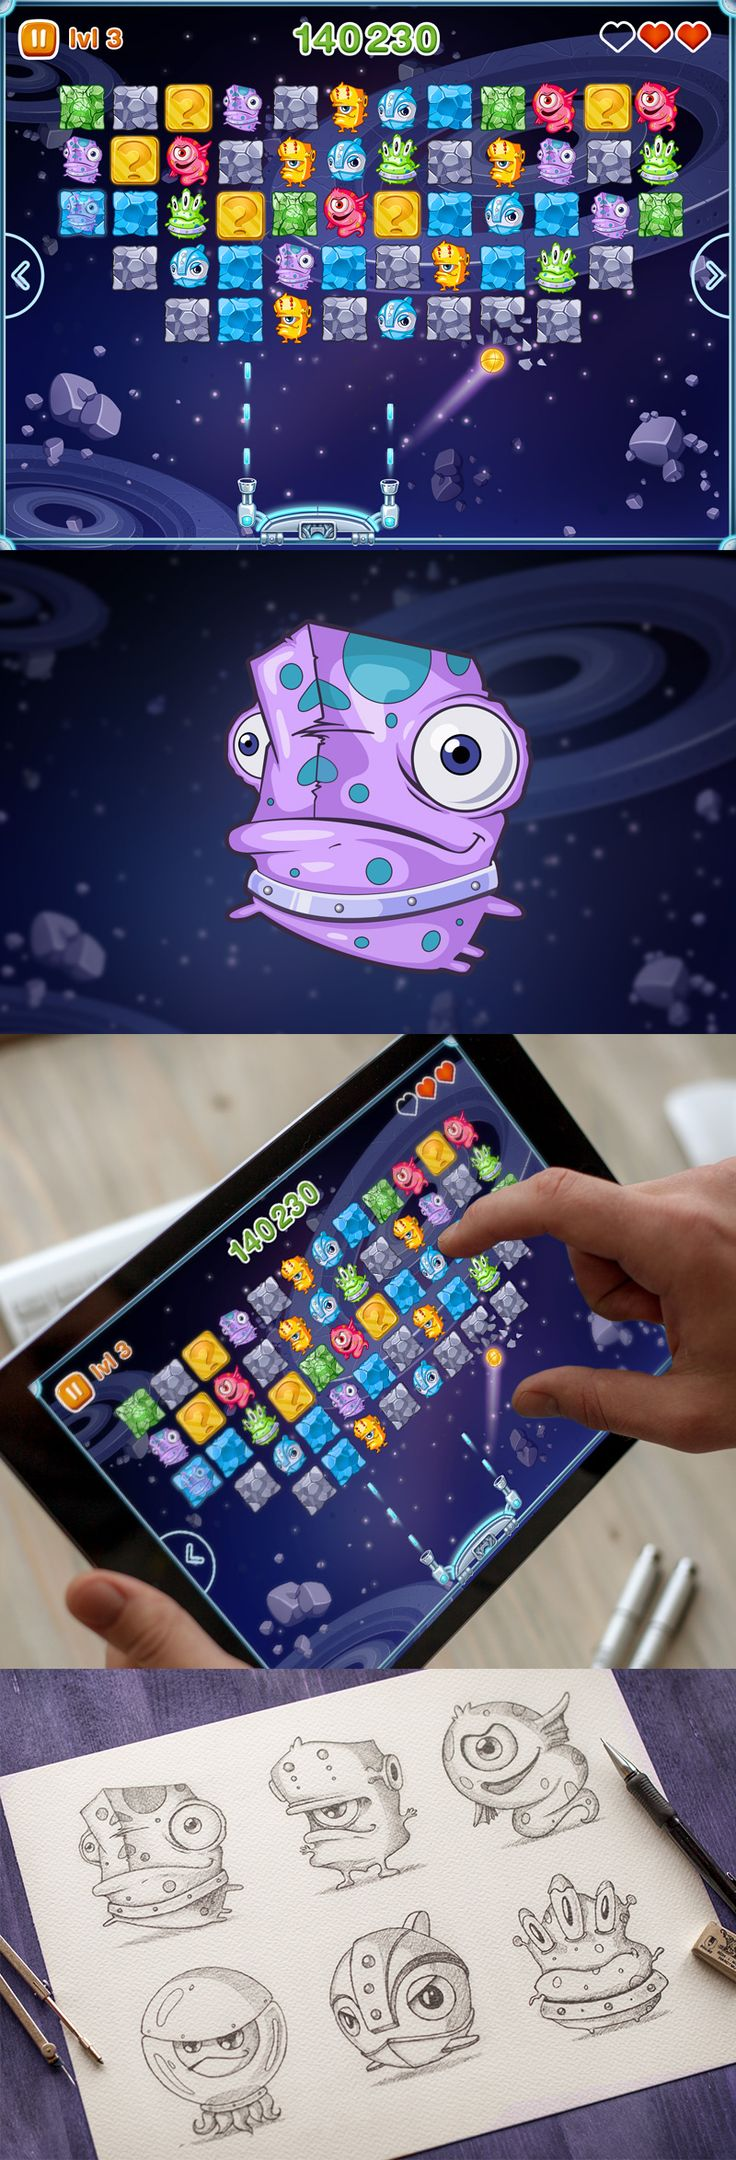 New fantastic arkanoid game. Meet aliens on your IOS devices :)